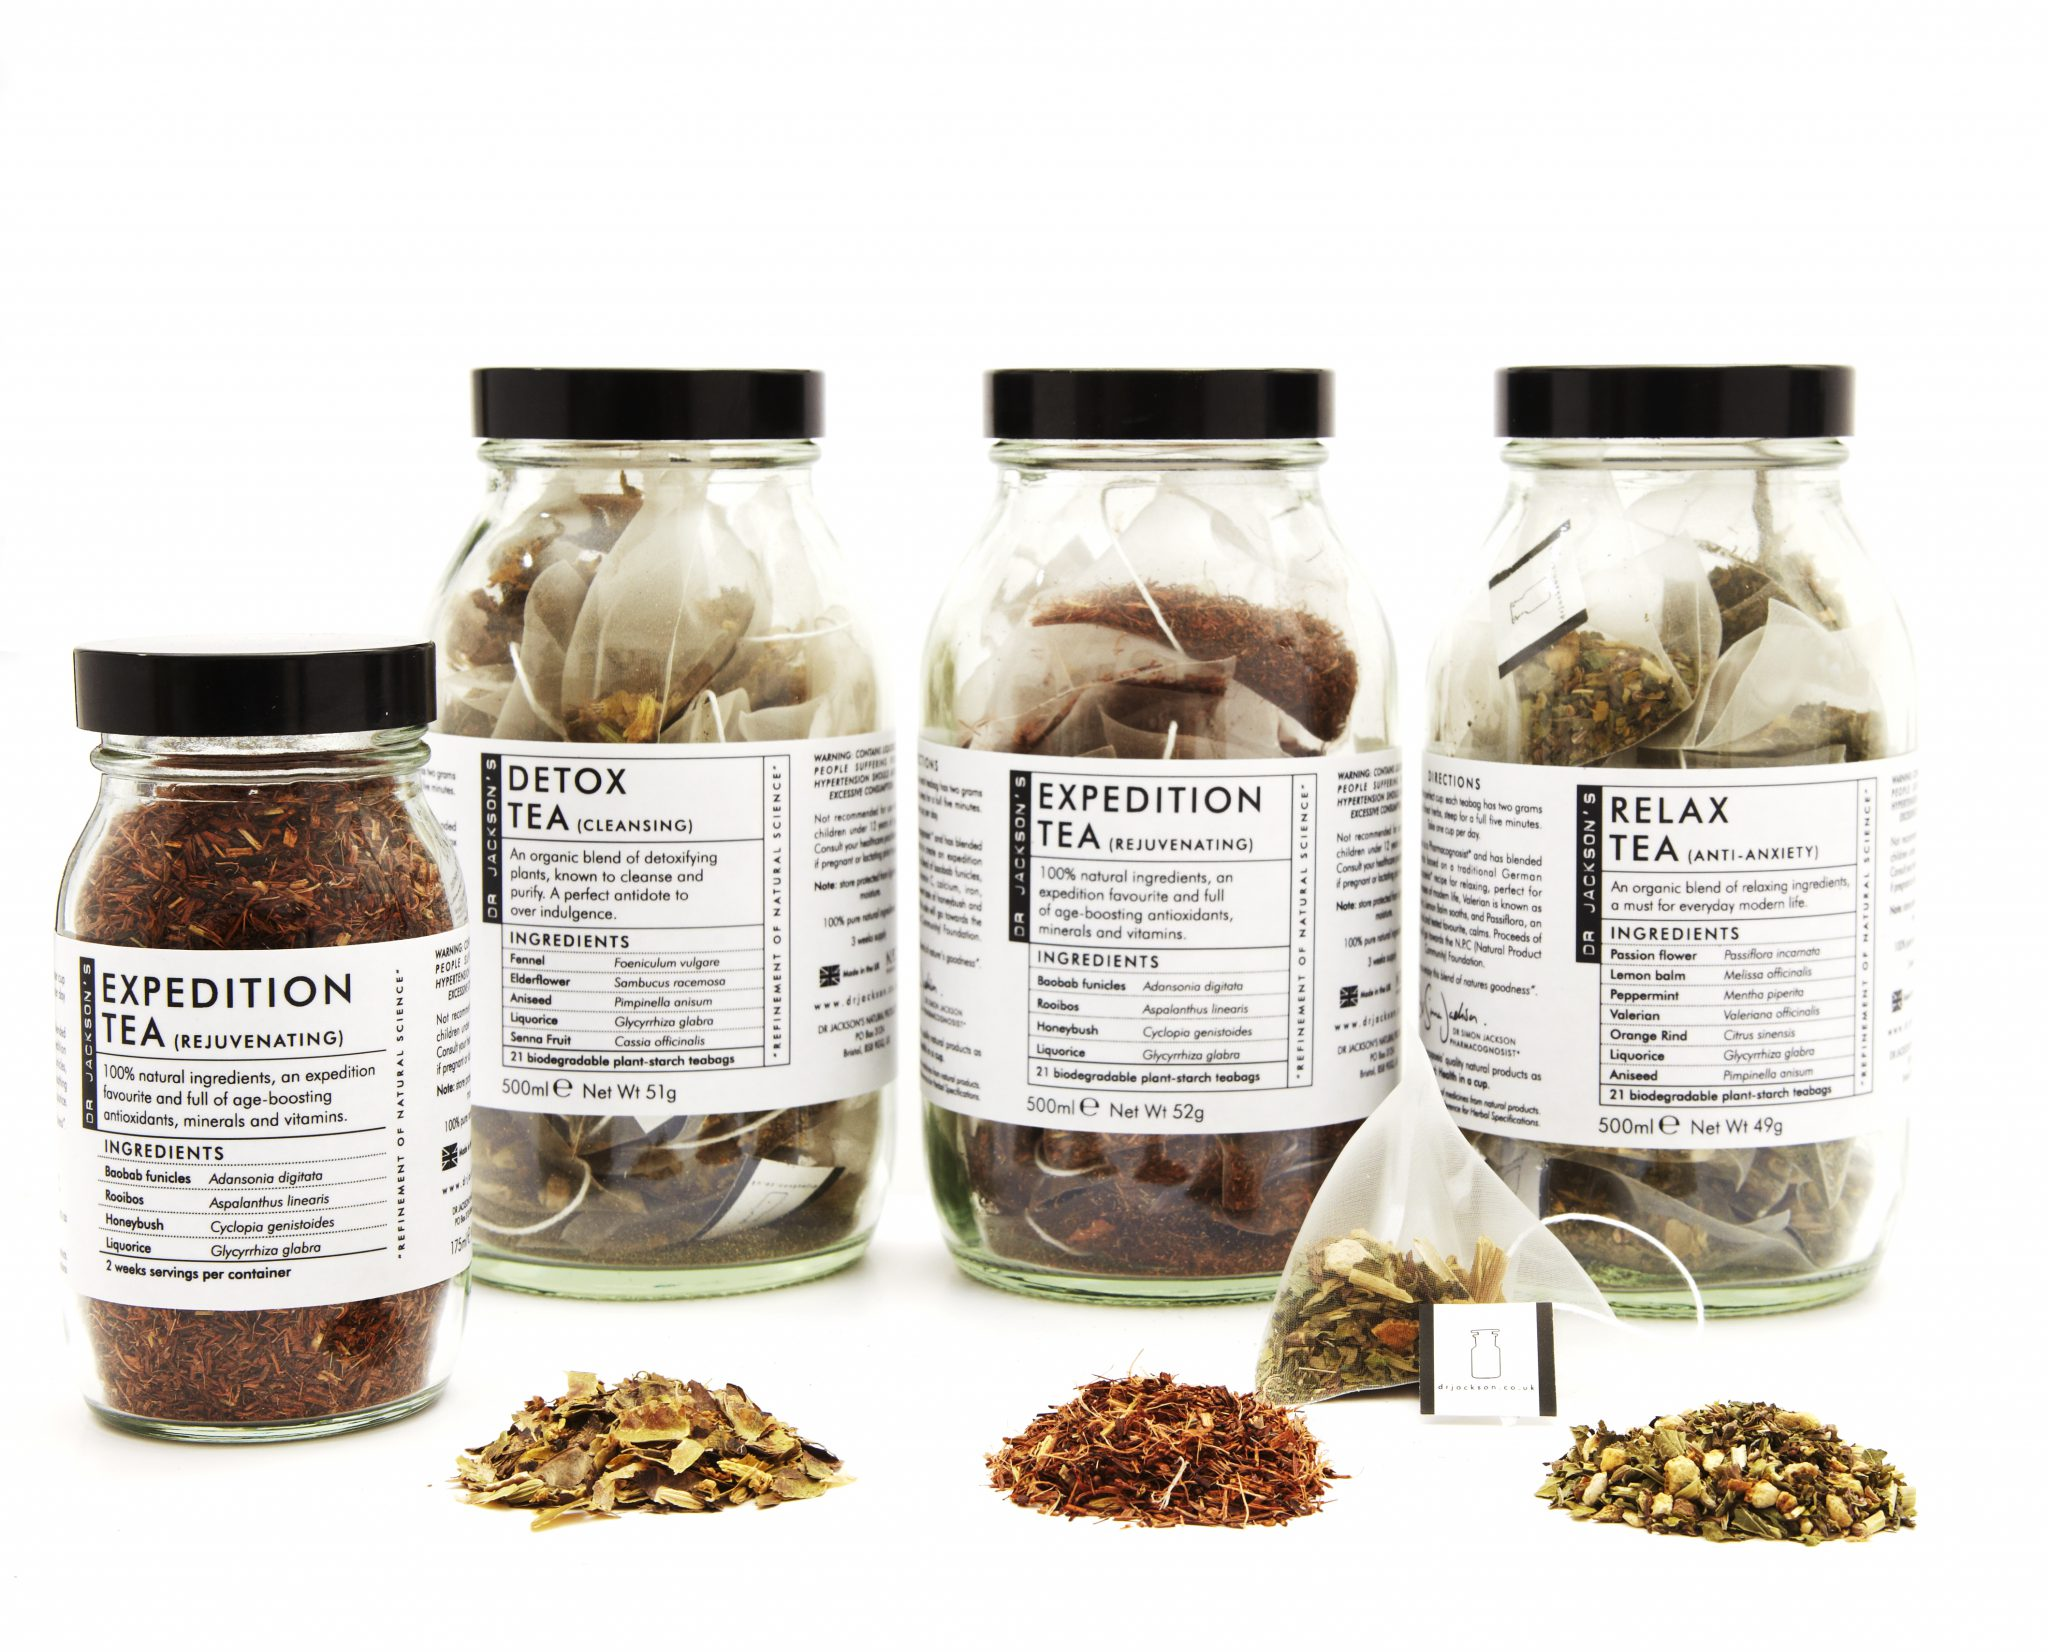 The Dr Jackson's brand now includes a range of organic tea blends.